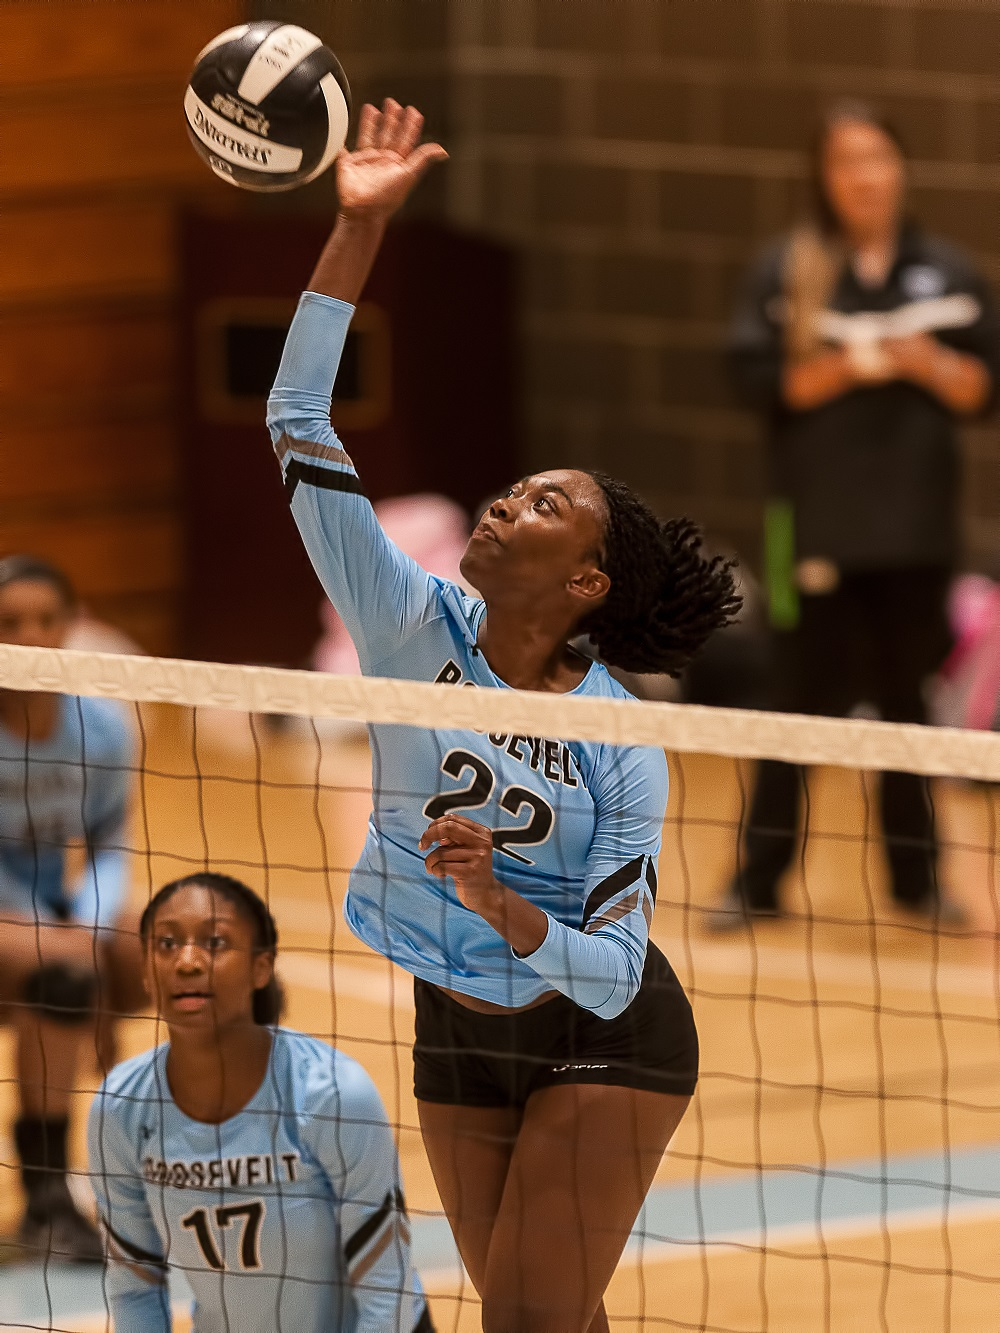 ROOSEVELT VOLLEYBALL REMAINS UNDEFEATED WITH WIN OVER BOWIE